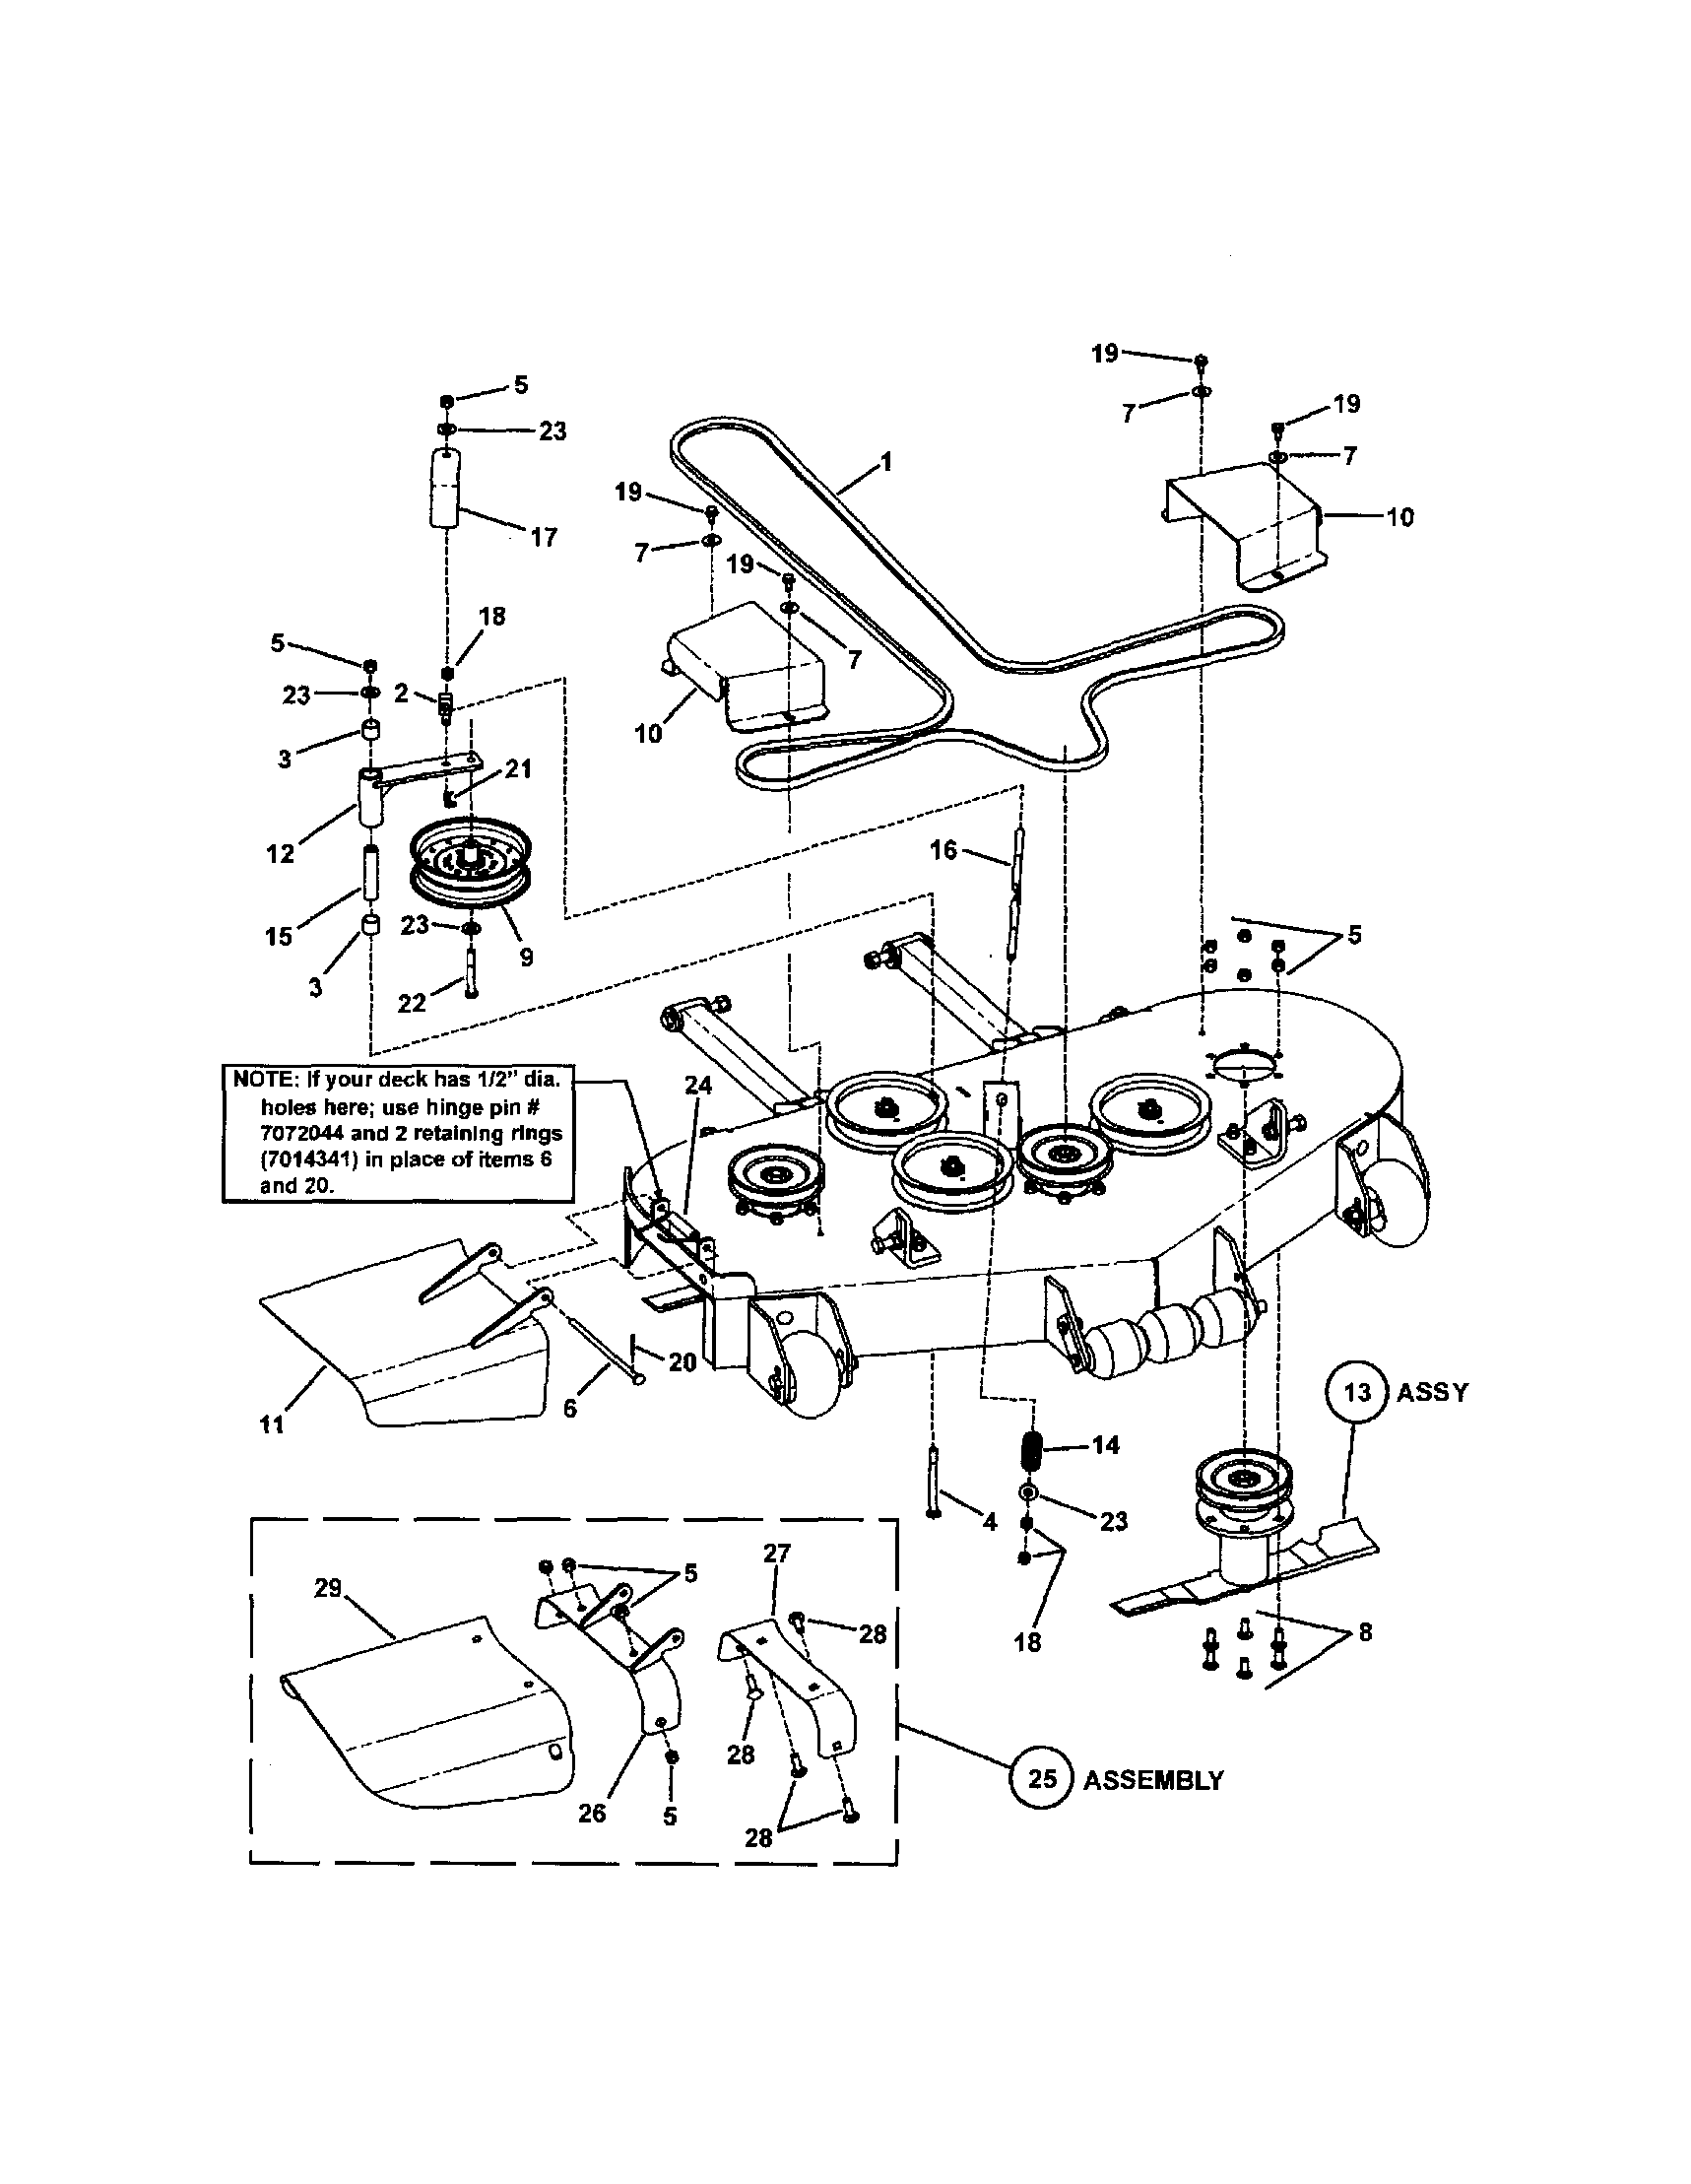 zero turn mower drawing at getdrawings com free for personal use rh getdrawings com